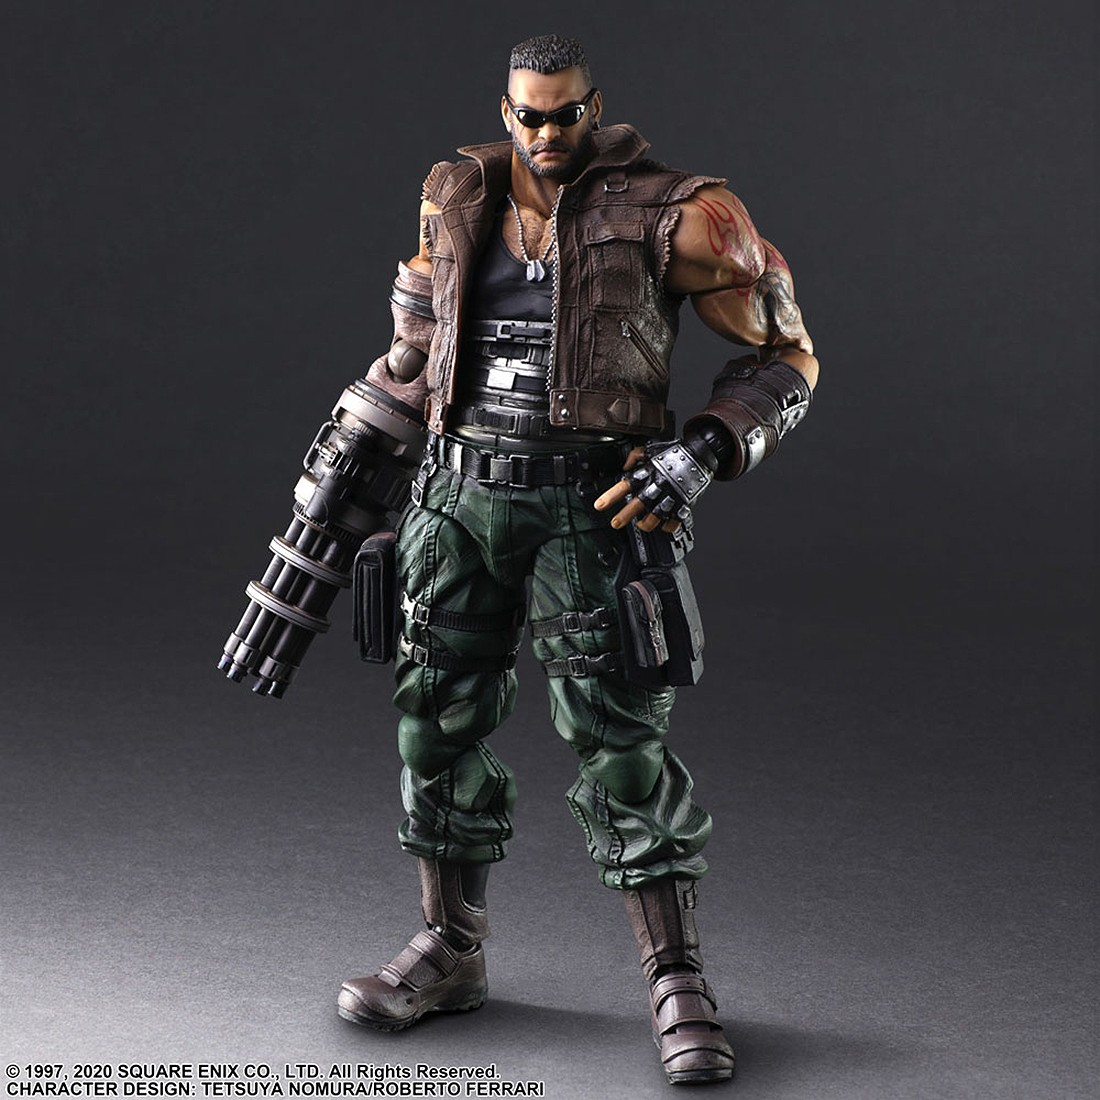 PREORDER - Square Enix Final Fantasy VII Remake Play Arts Kai Barret Wallace Ver. 2 Figure (brown)